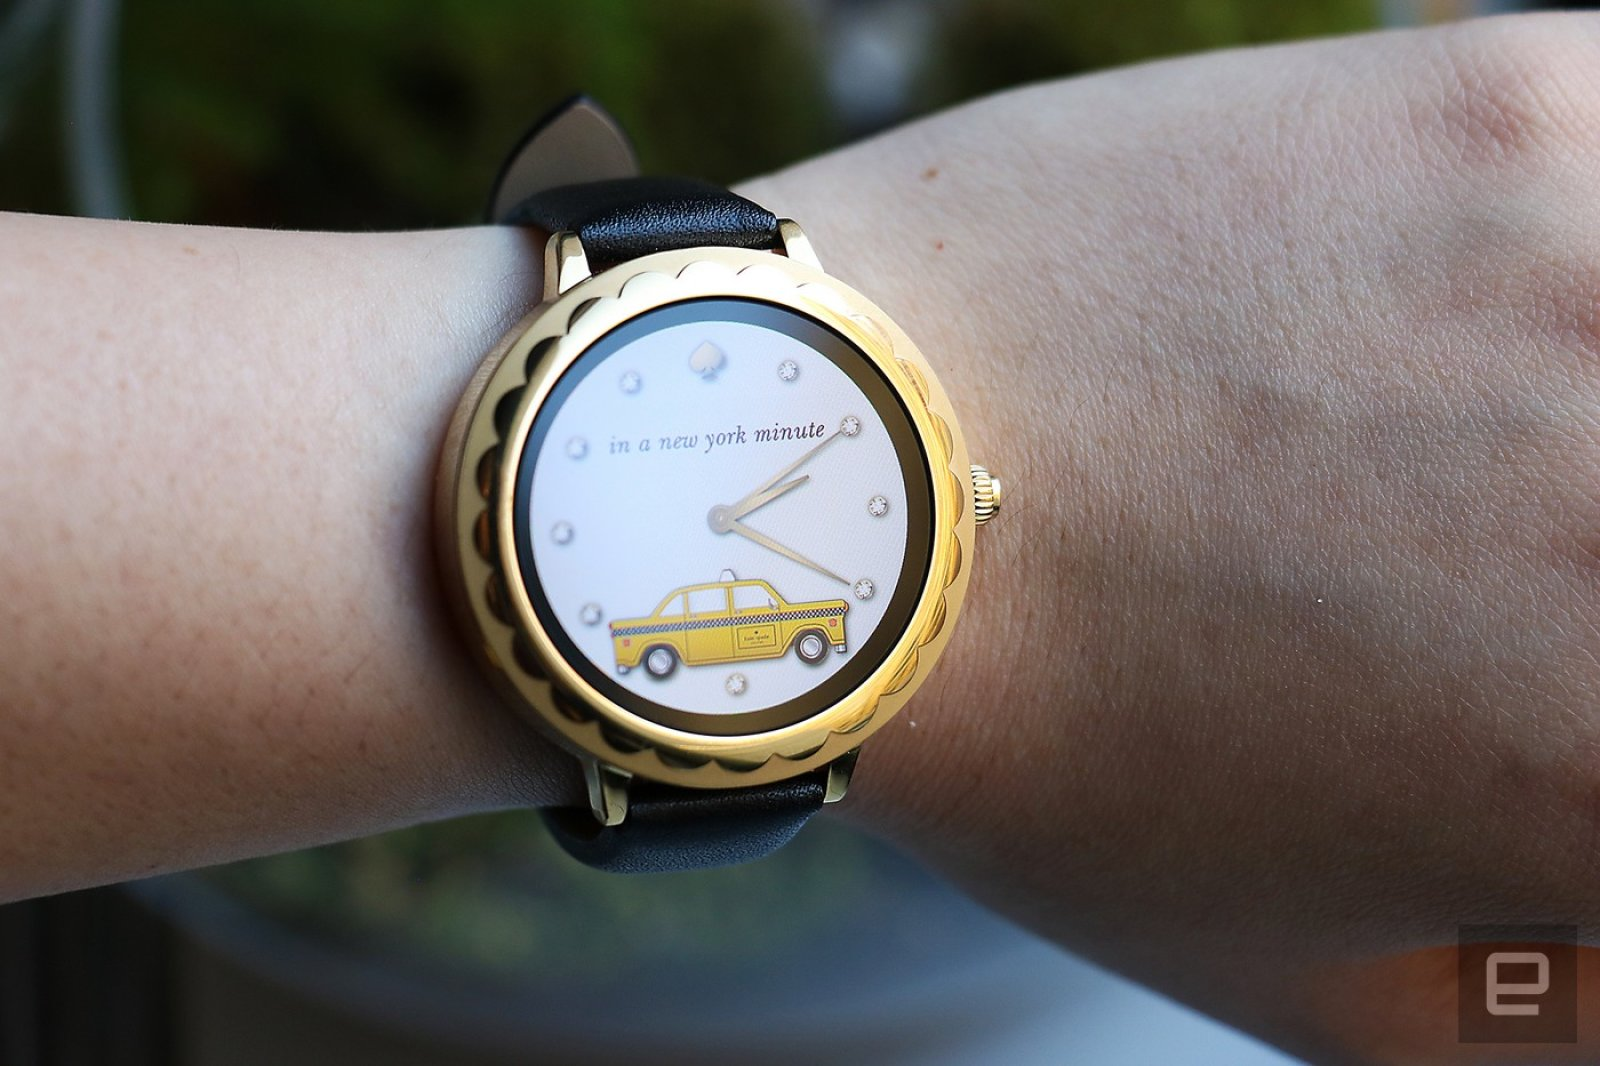 dea598712 Skagen and Kate Spade announce new Android Wear smartwatches